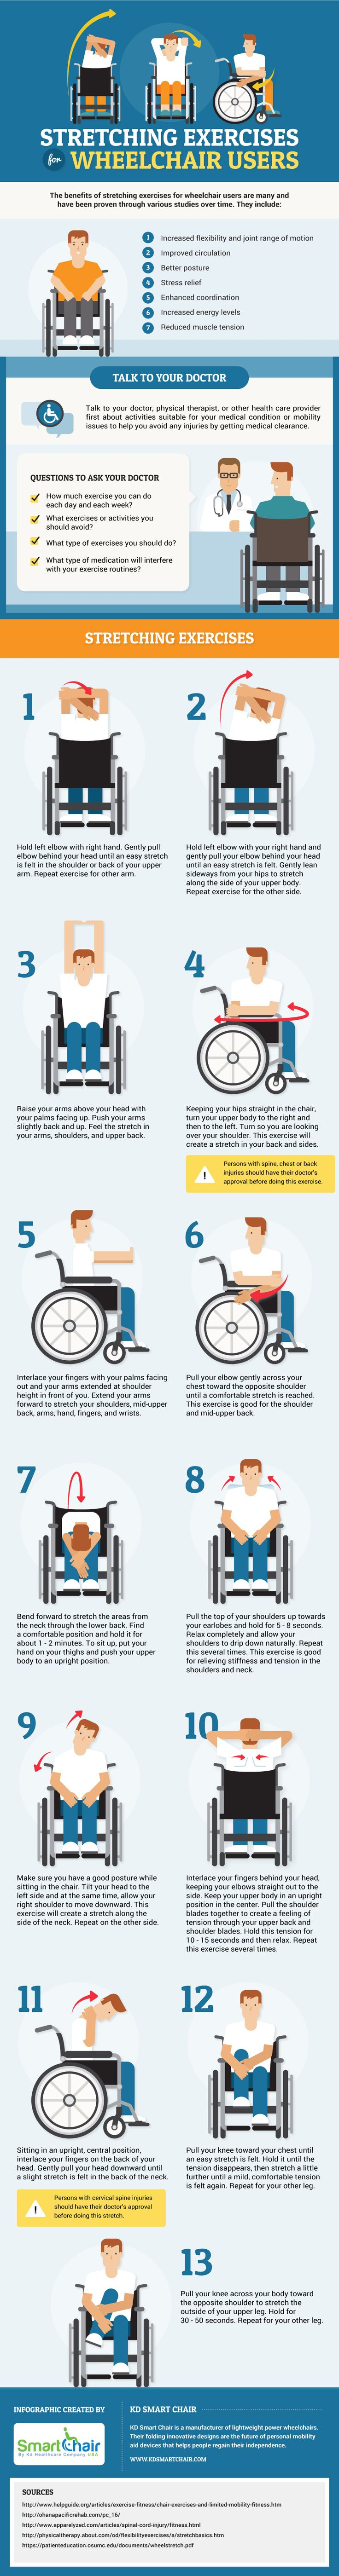 Stretching Exercises for Wheelchair Users #infographic #Exercises #Health